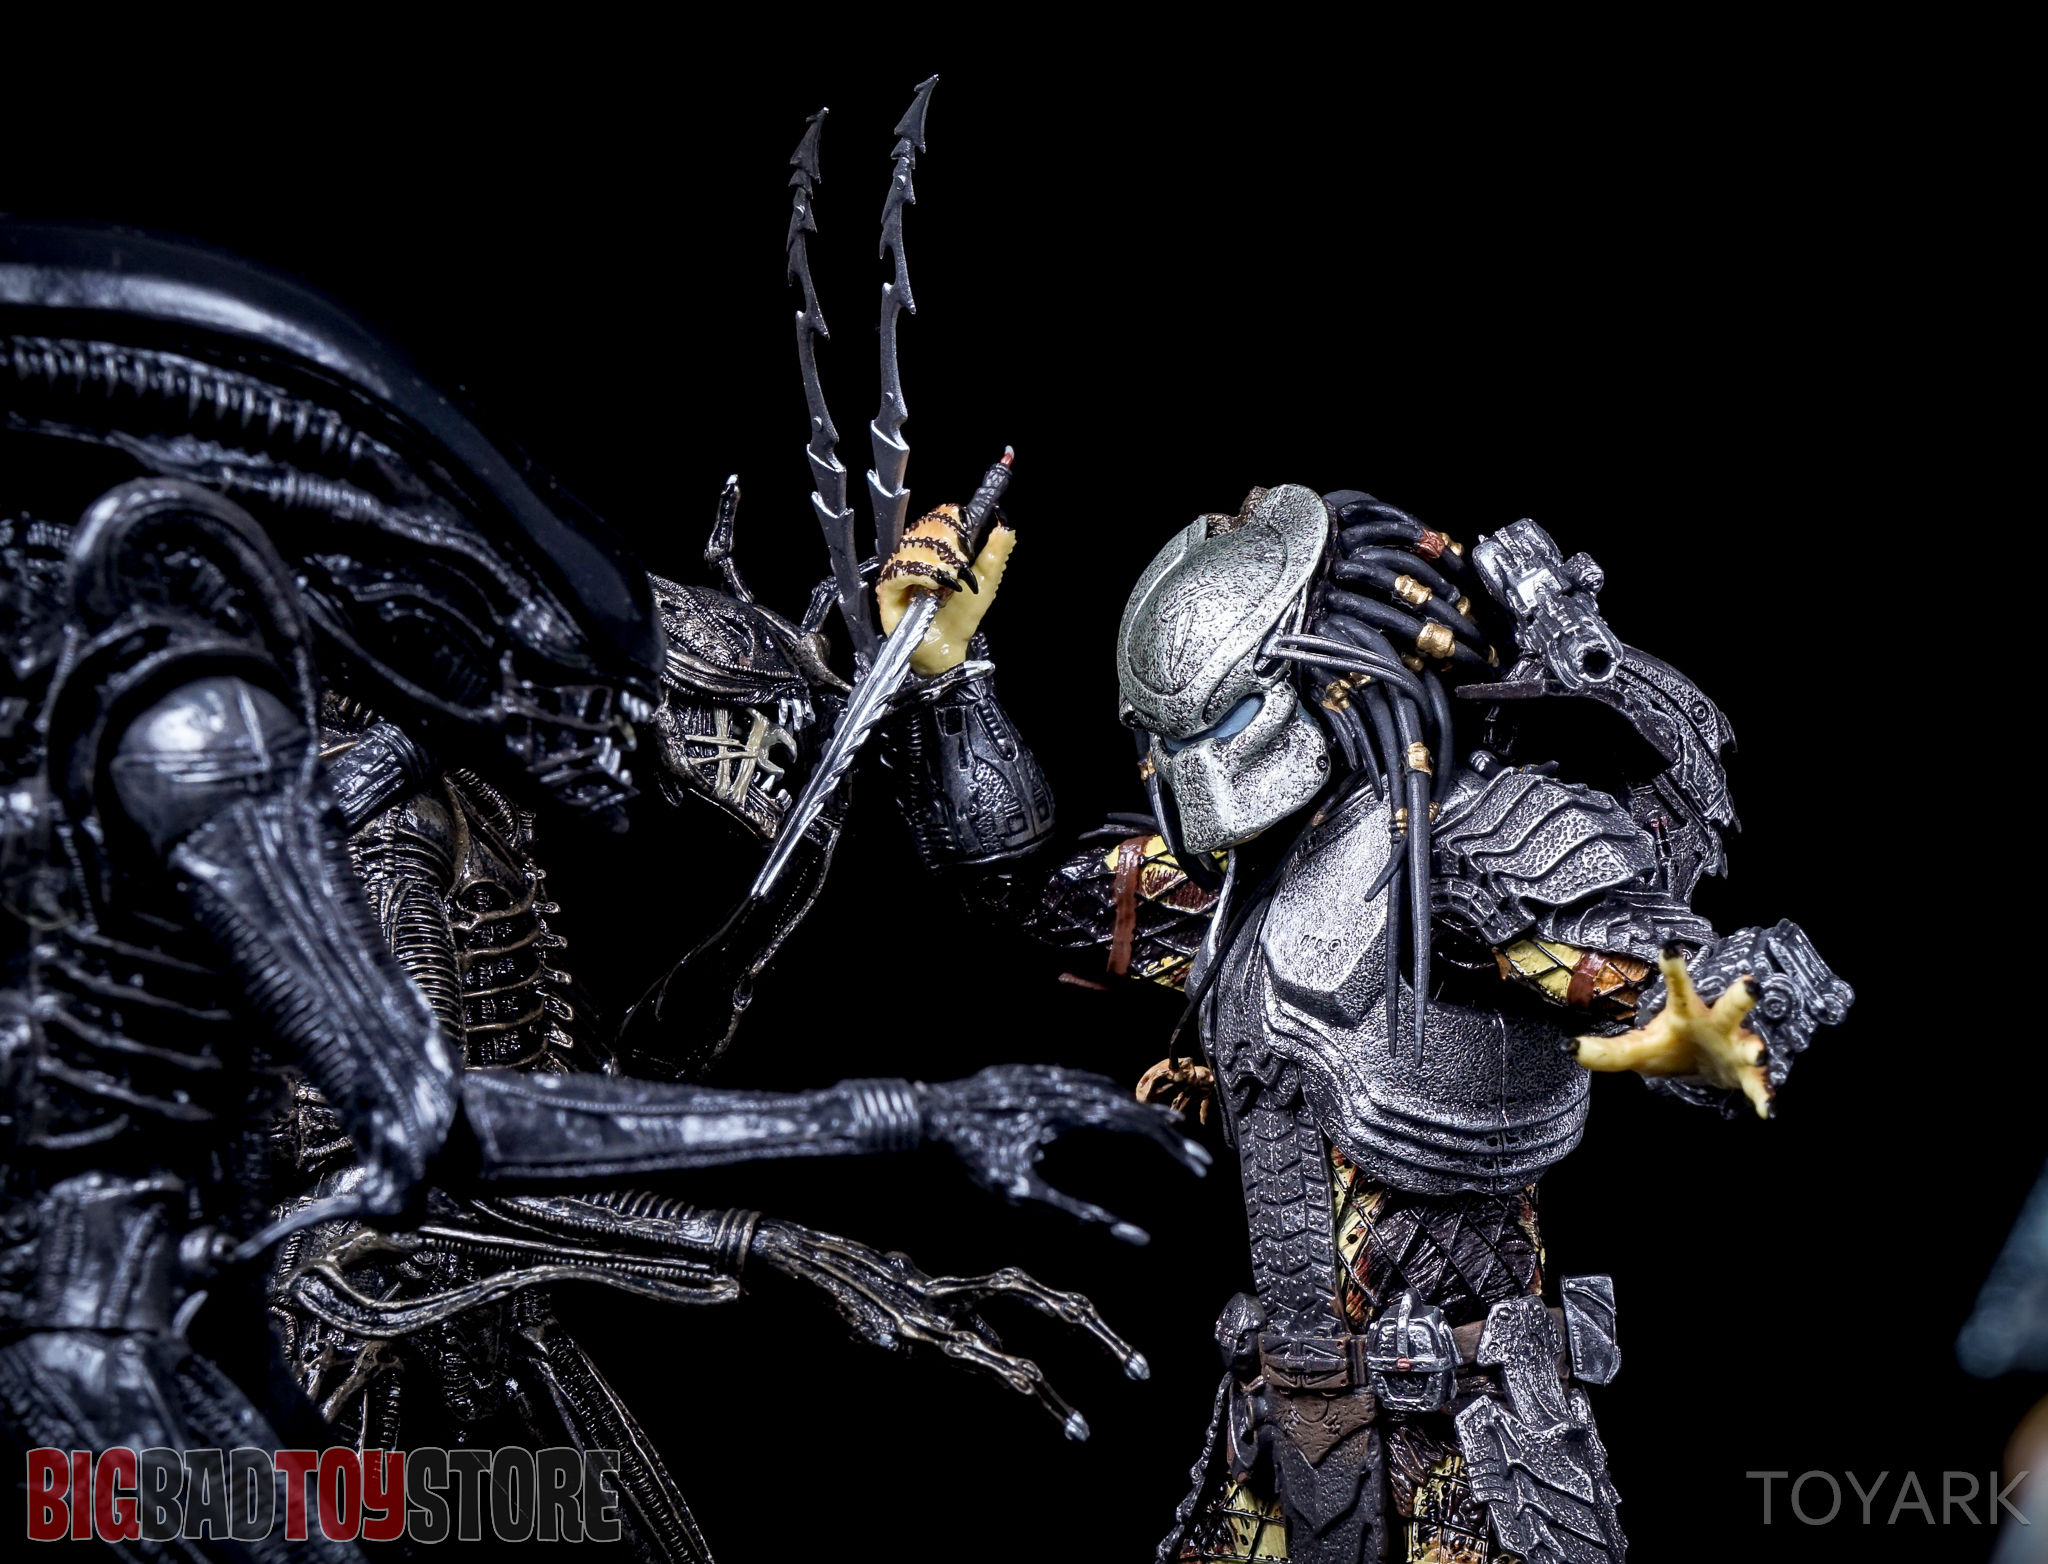 http://news.toyark.com/wp-content/uploads/sites/4/2016/05/NECA-Predator-Series-15-AvP-082.jpg